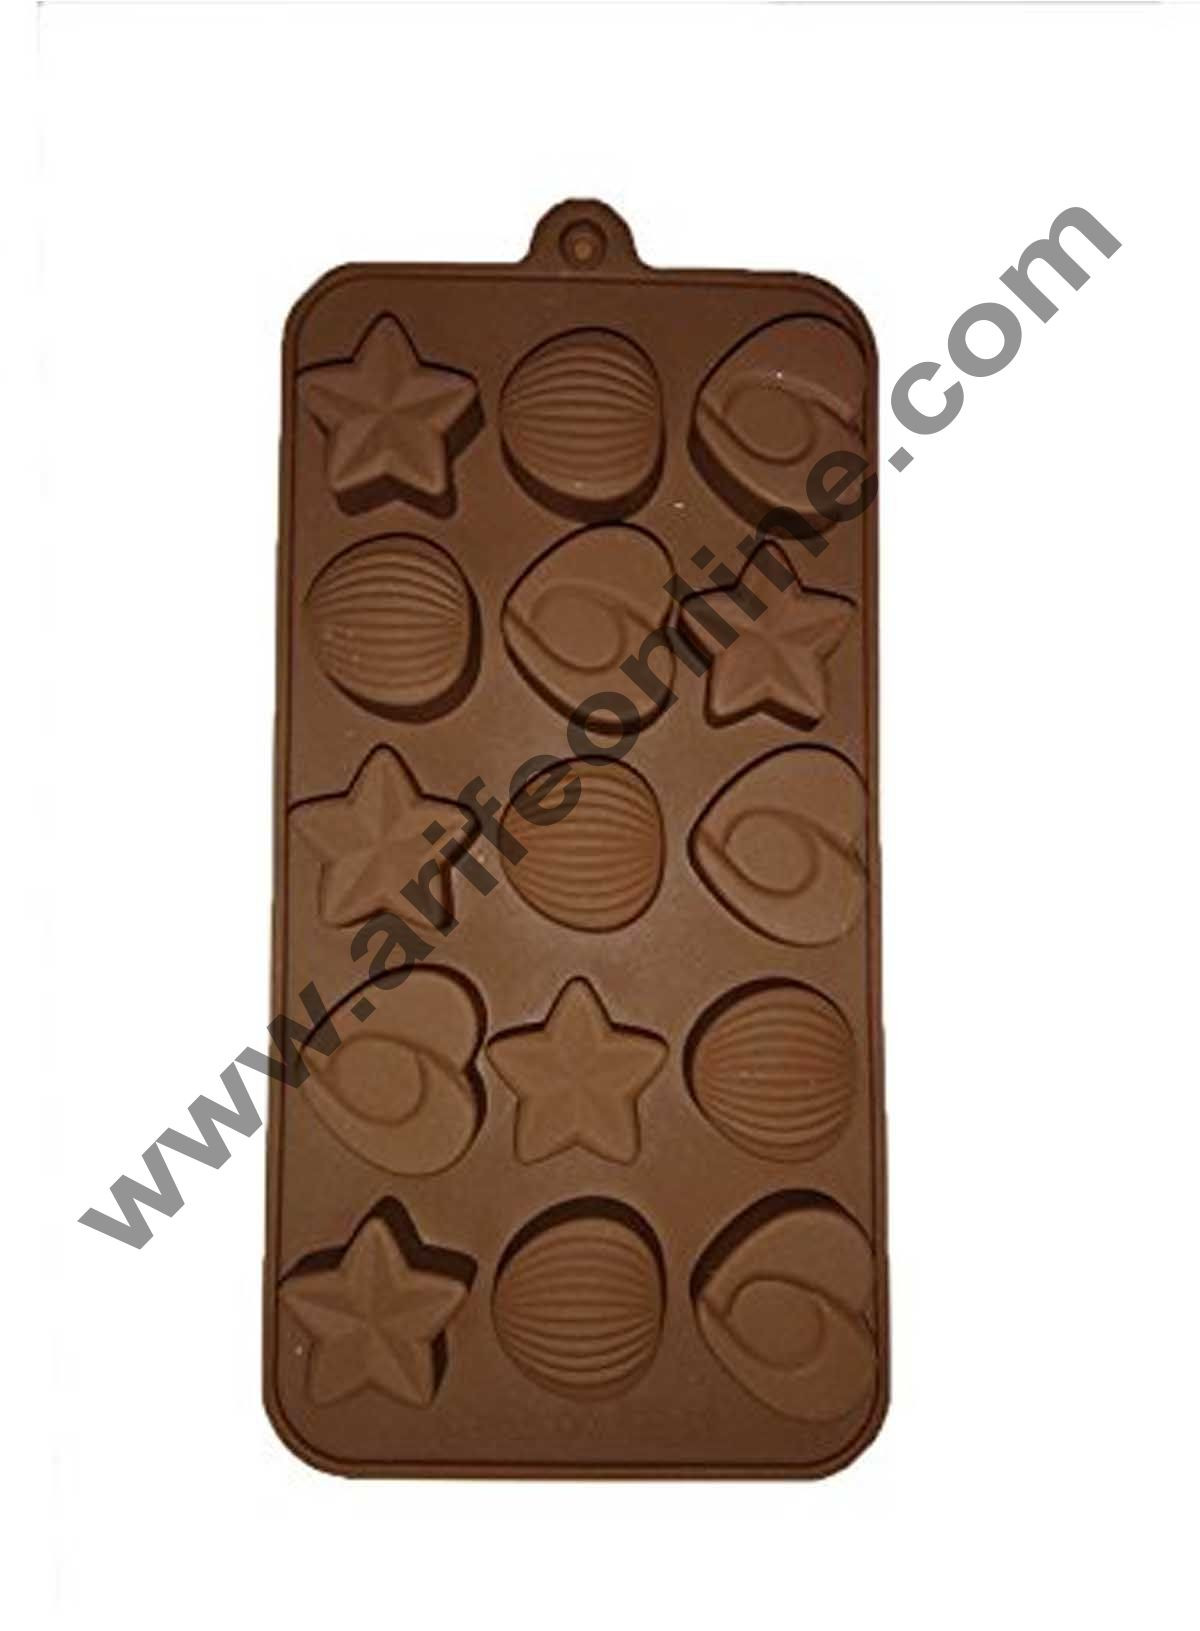 Cake Decor 15-Cavity Hearts,Stars and Shells Shape Silicone Brown chocolate Moulds